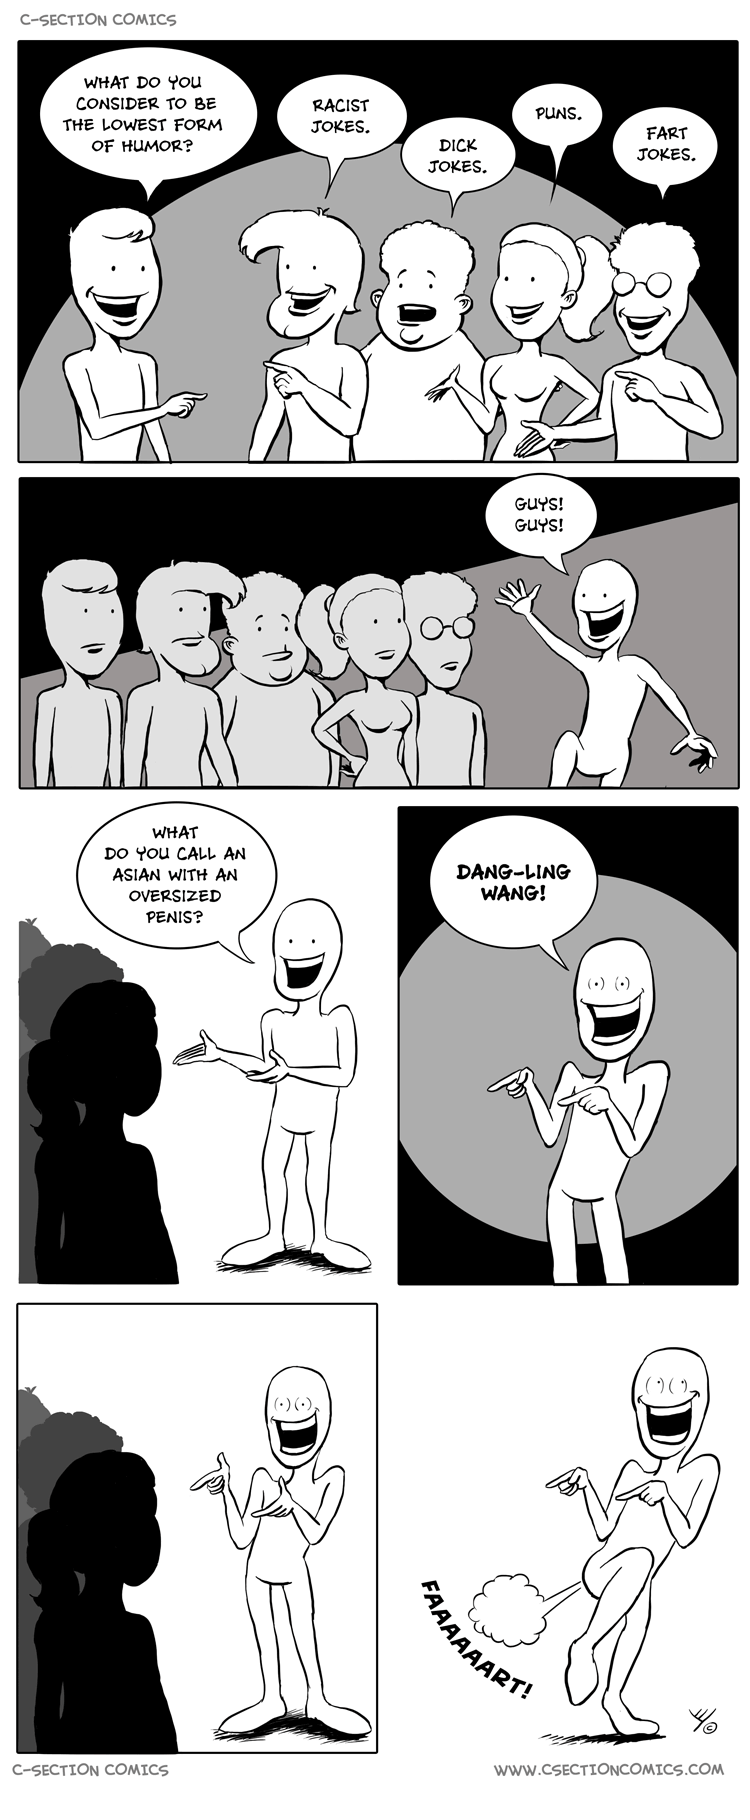 The Lowest Form of Humor by C-Section Comics